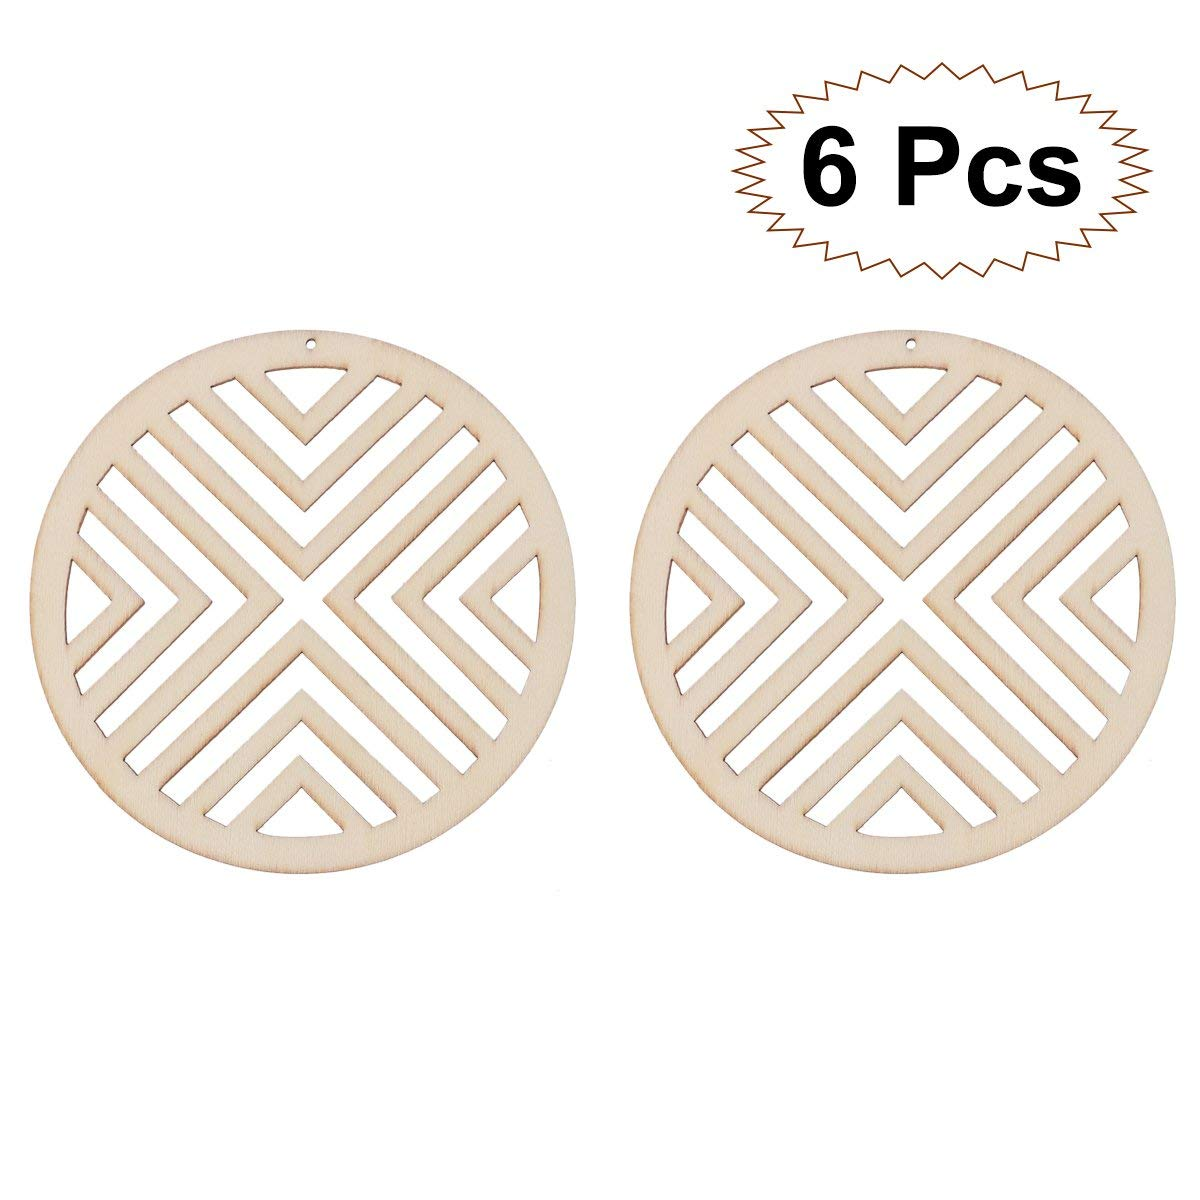 LUOEM 6PCS Wooden Crafts Embellishment Hollow Round Cutout Veneers Slices For Patchwork DIY Crafting Decoration Christmas Tree Pendants Hanging Ornaments Wood Tag For Wedding Party